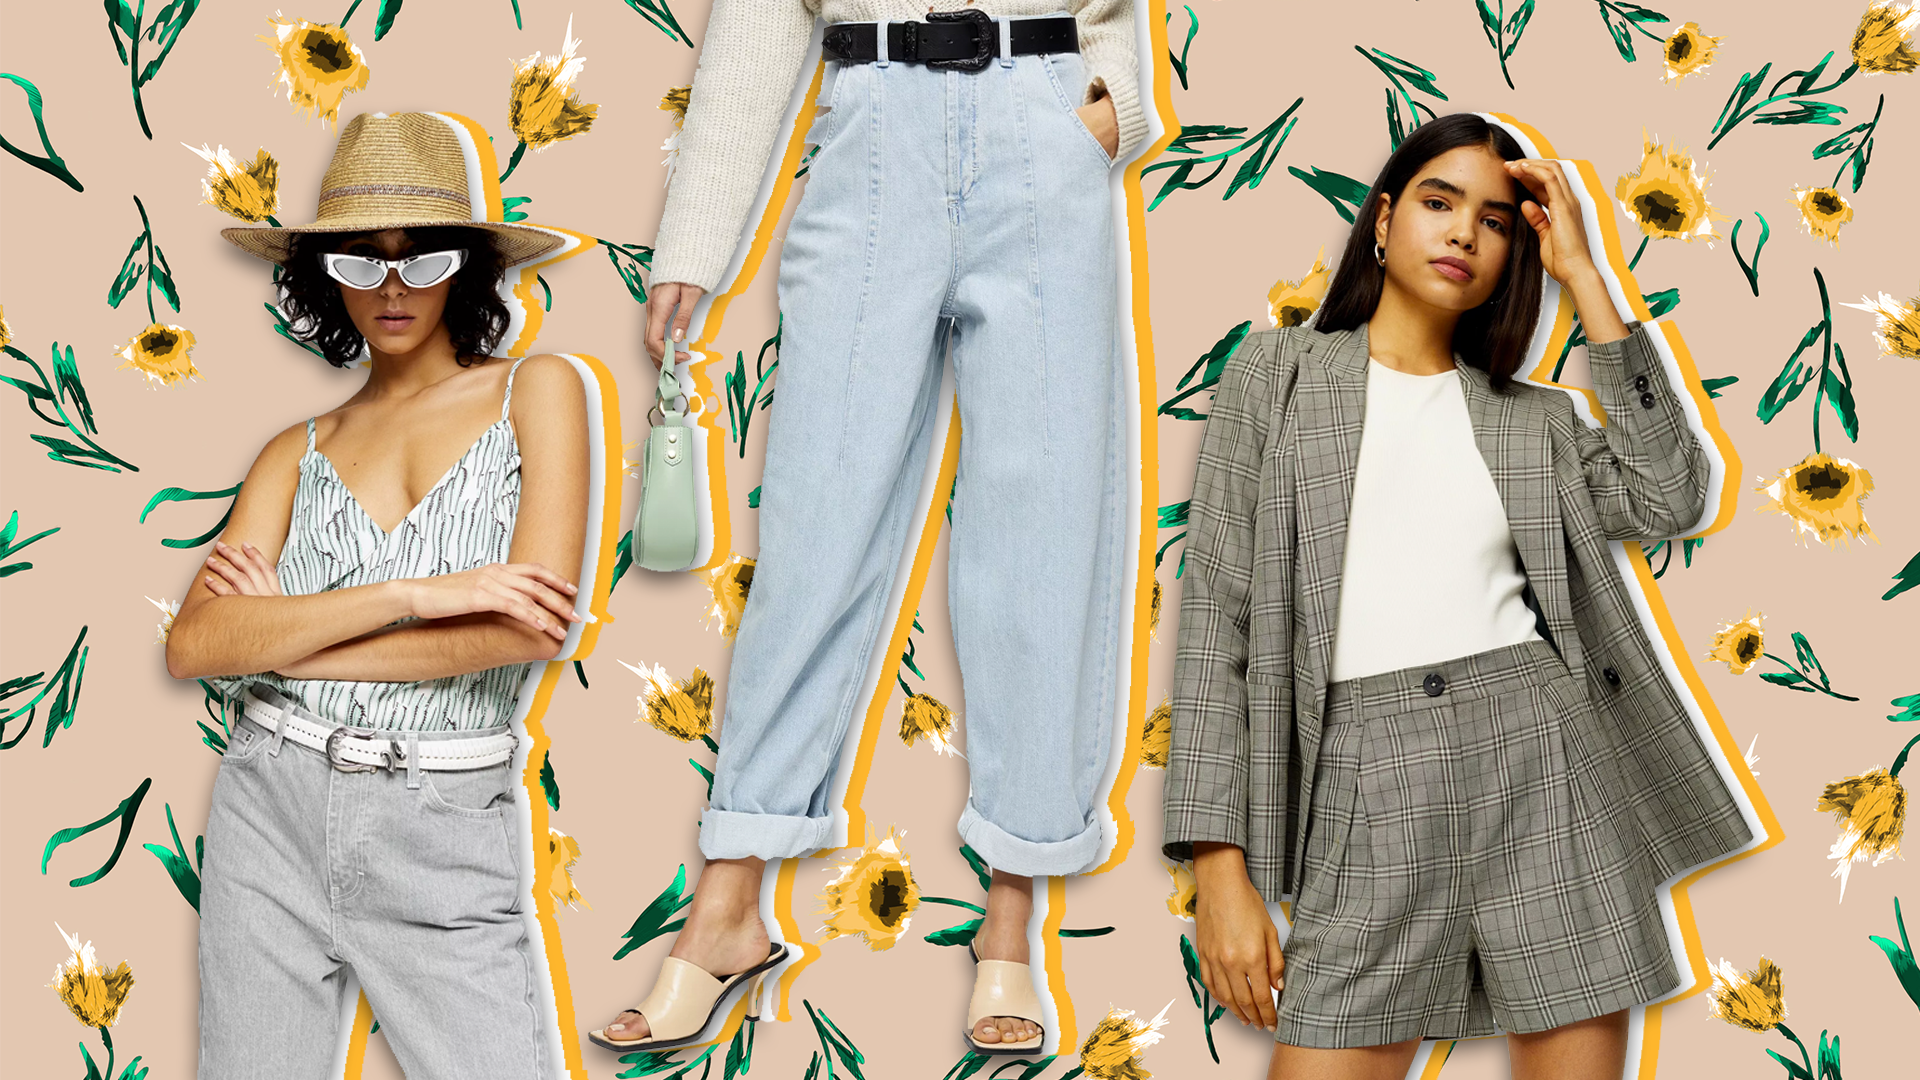 Shop It While It's Hot! Topshop's 60% Off Sale Is Happening Now